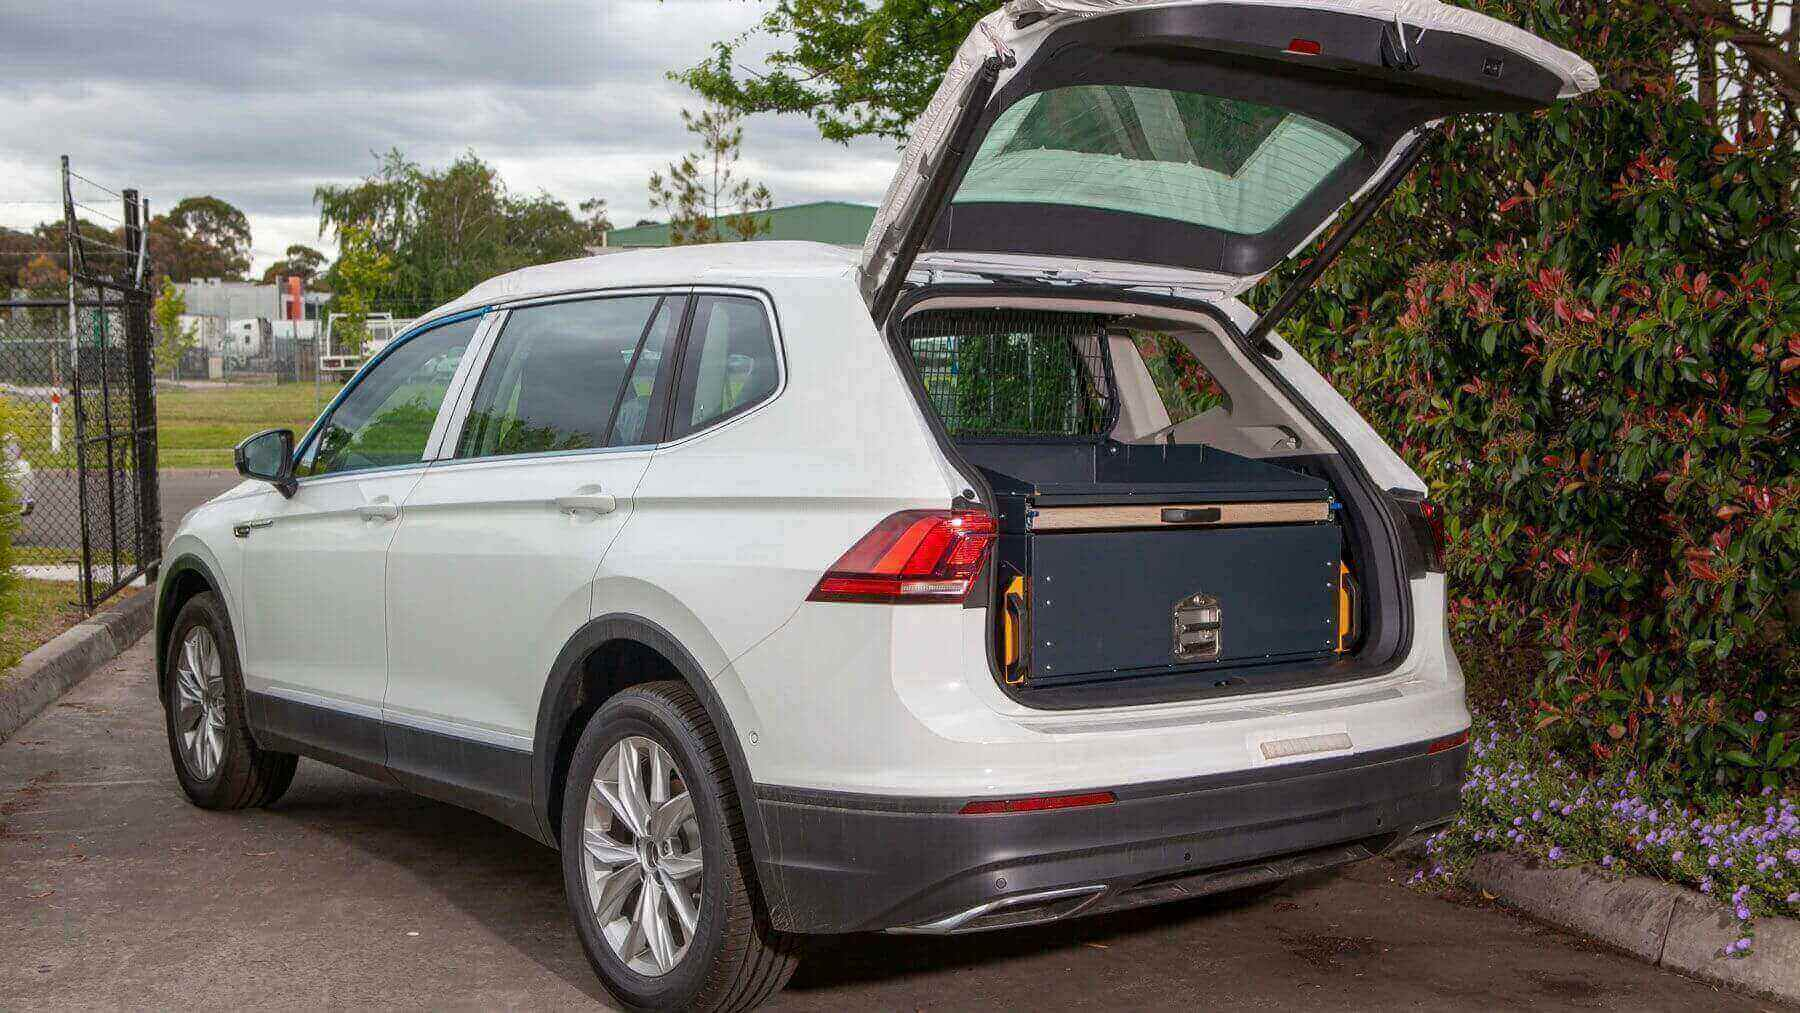 Vehicle Storage Systems